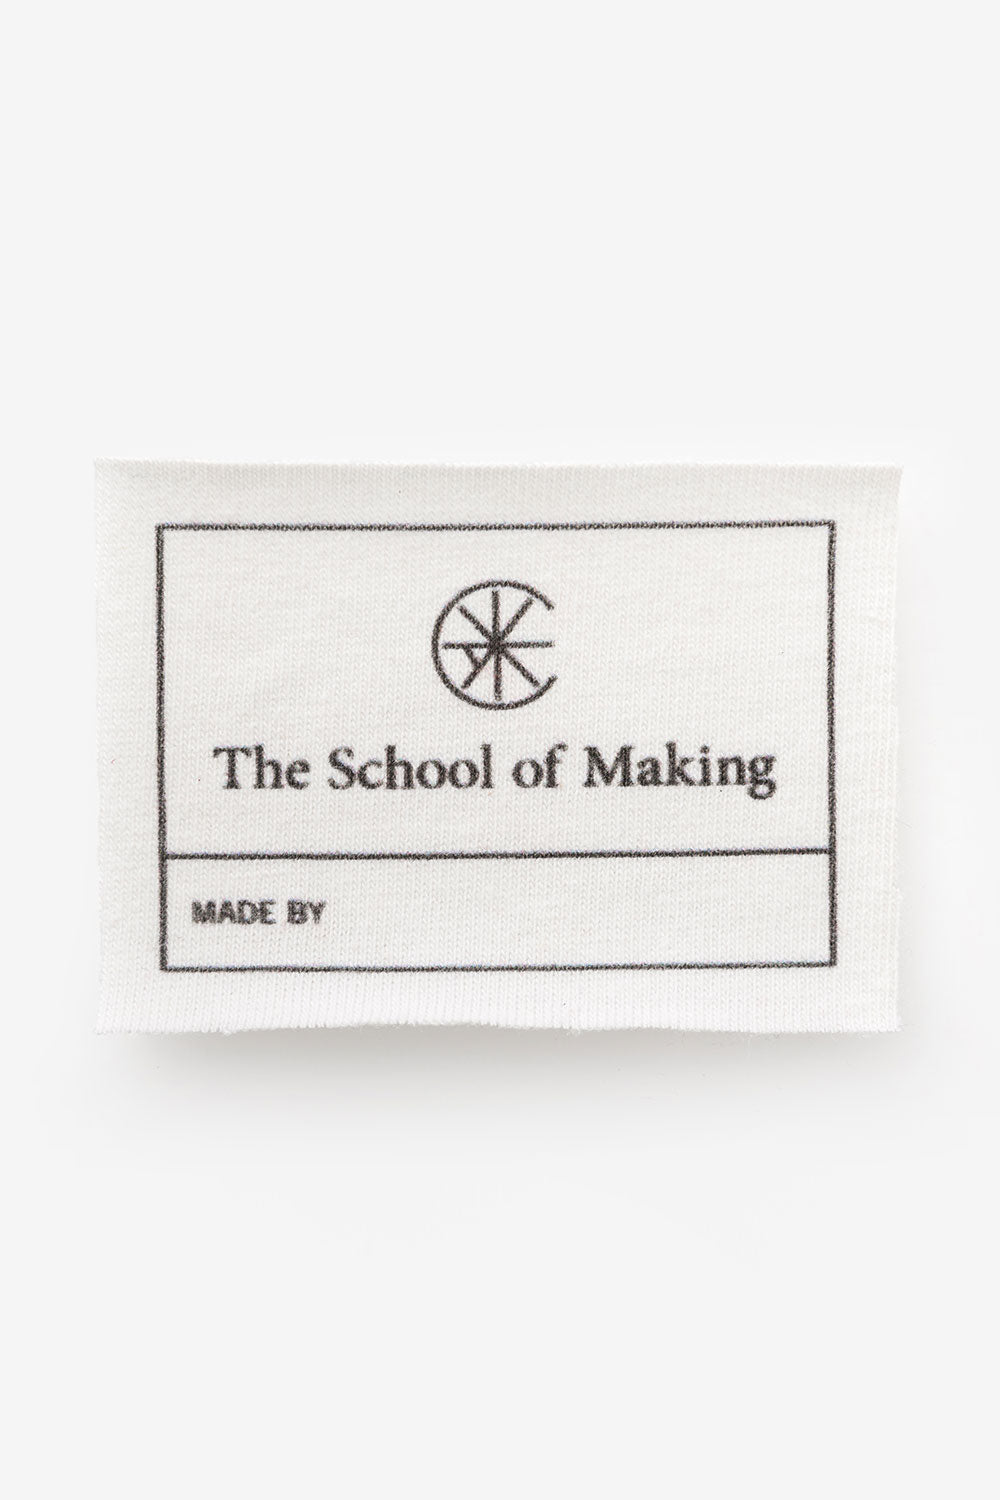 The School of Making The A-Line Dress Bundle 100% Organic Cotton Fabric Clothing Label for Sewing Supplies and DIY Projects